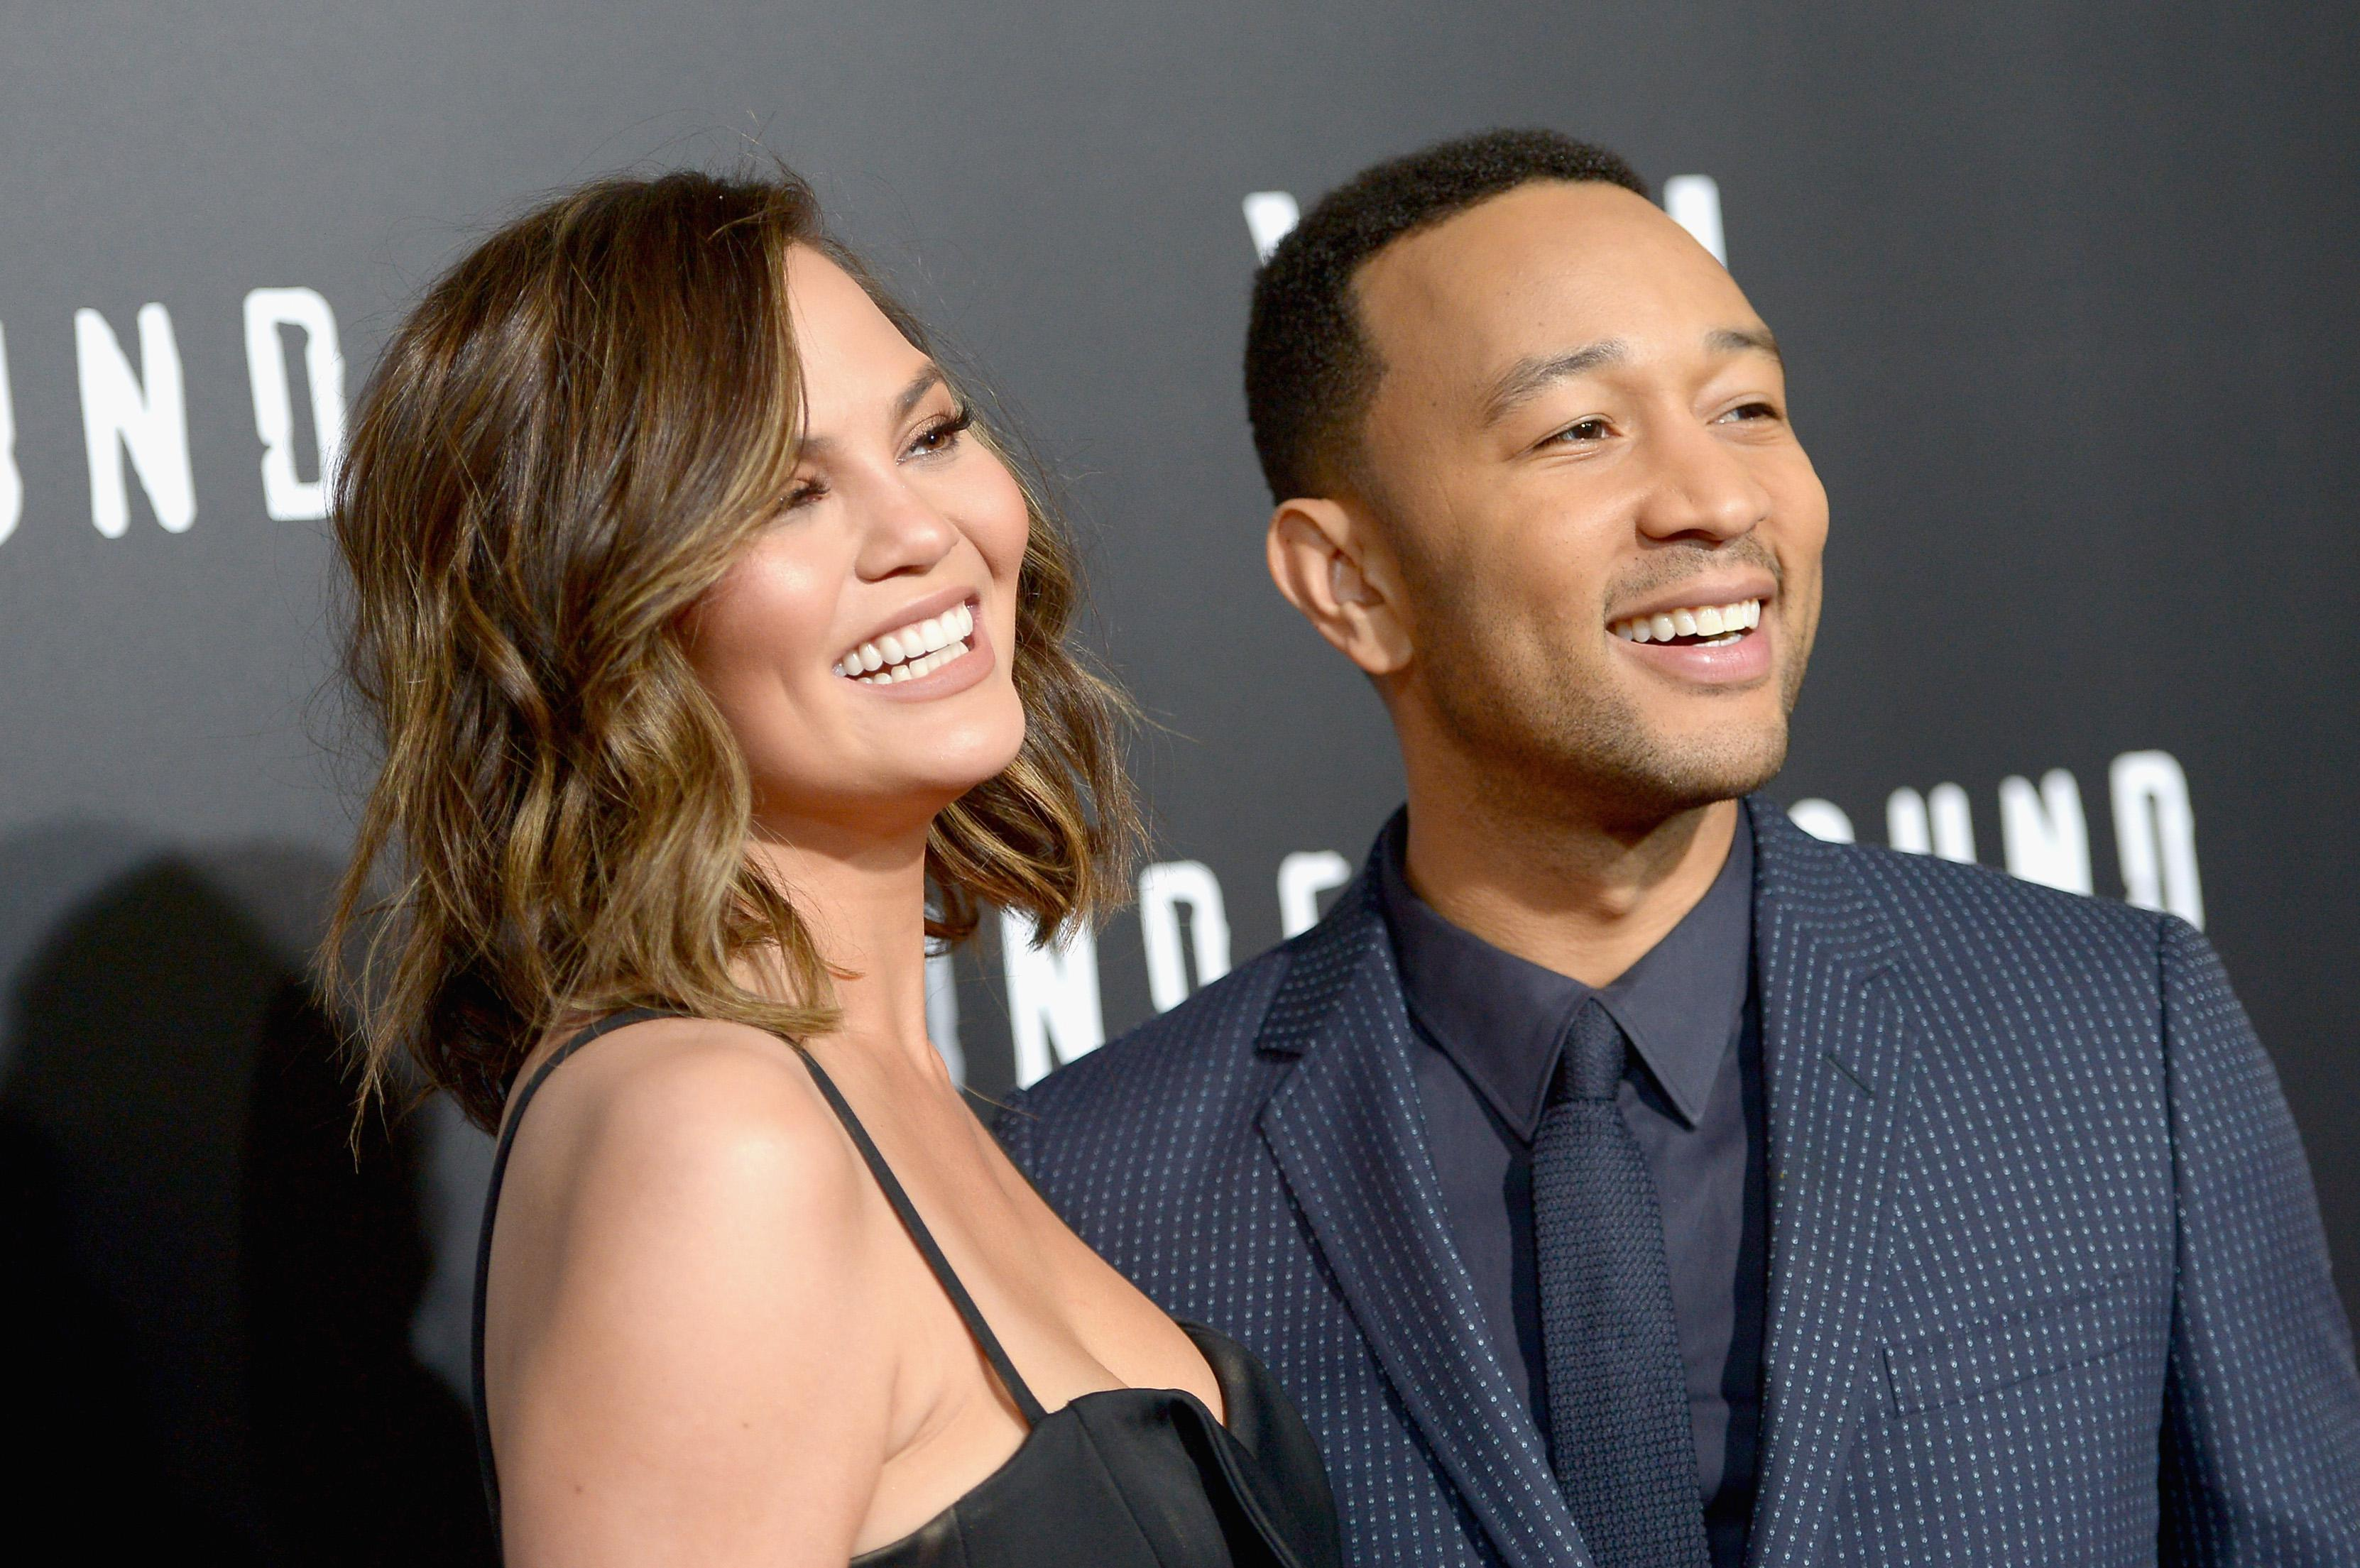 Chrissy Teigen and John Legend attend WGN America's Underground Season Two Premiere in March, 2017.